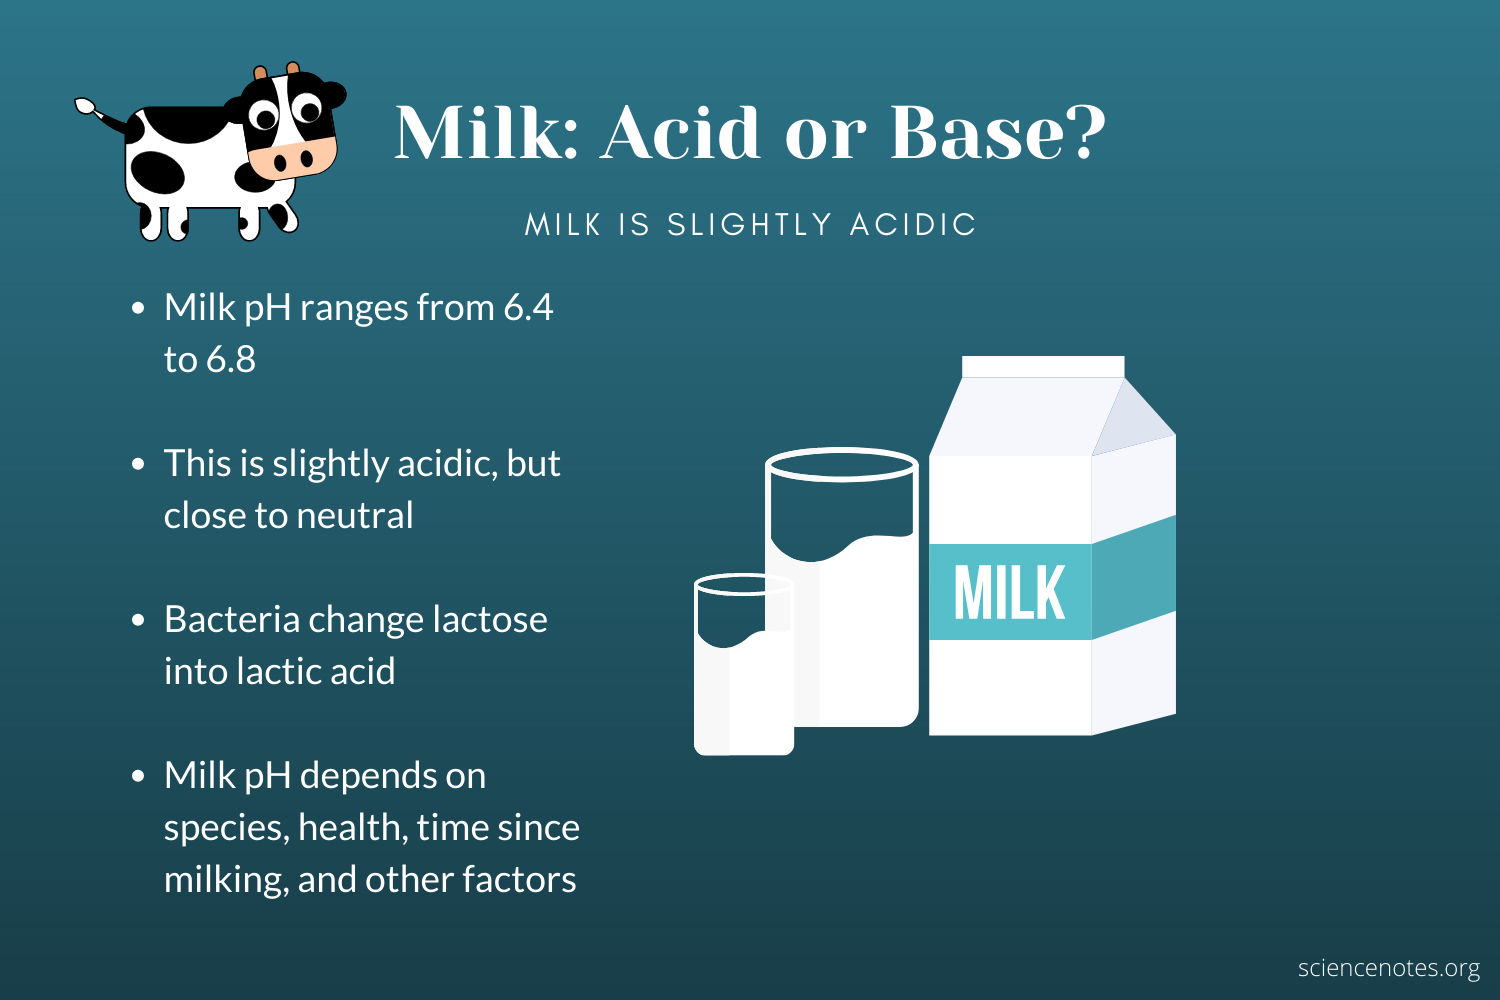 Milk is slightly acidic and becomes more acidic over time.